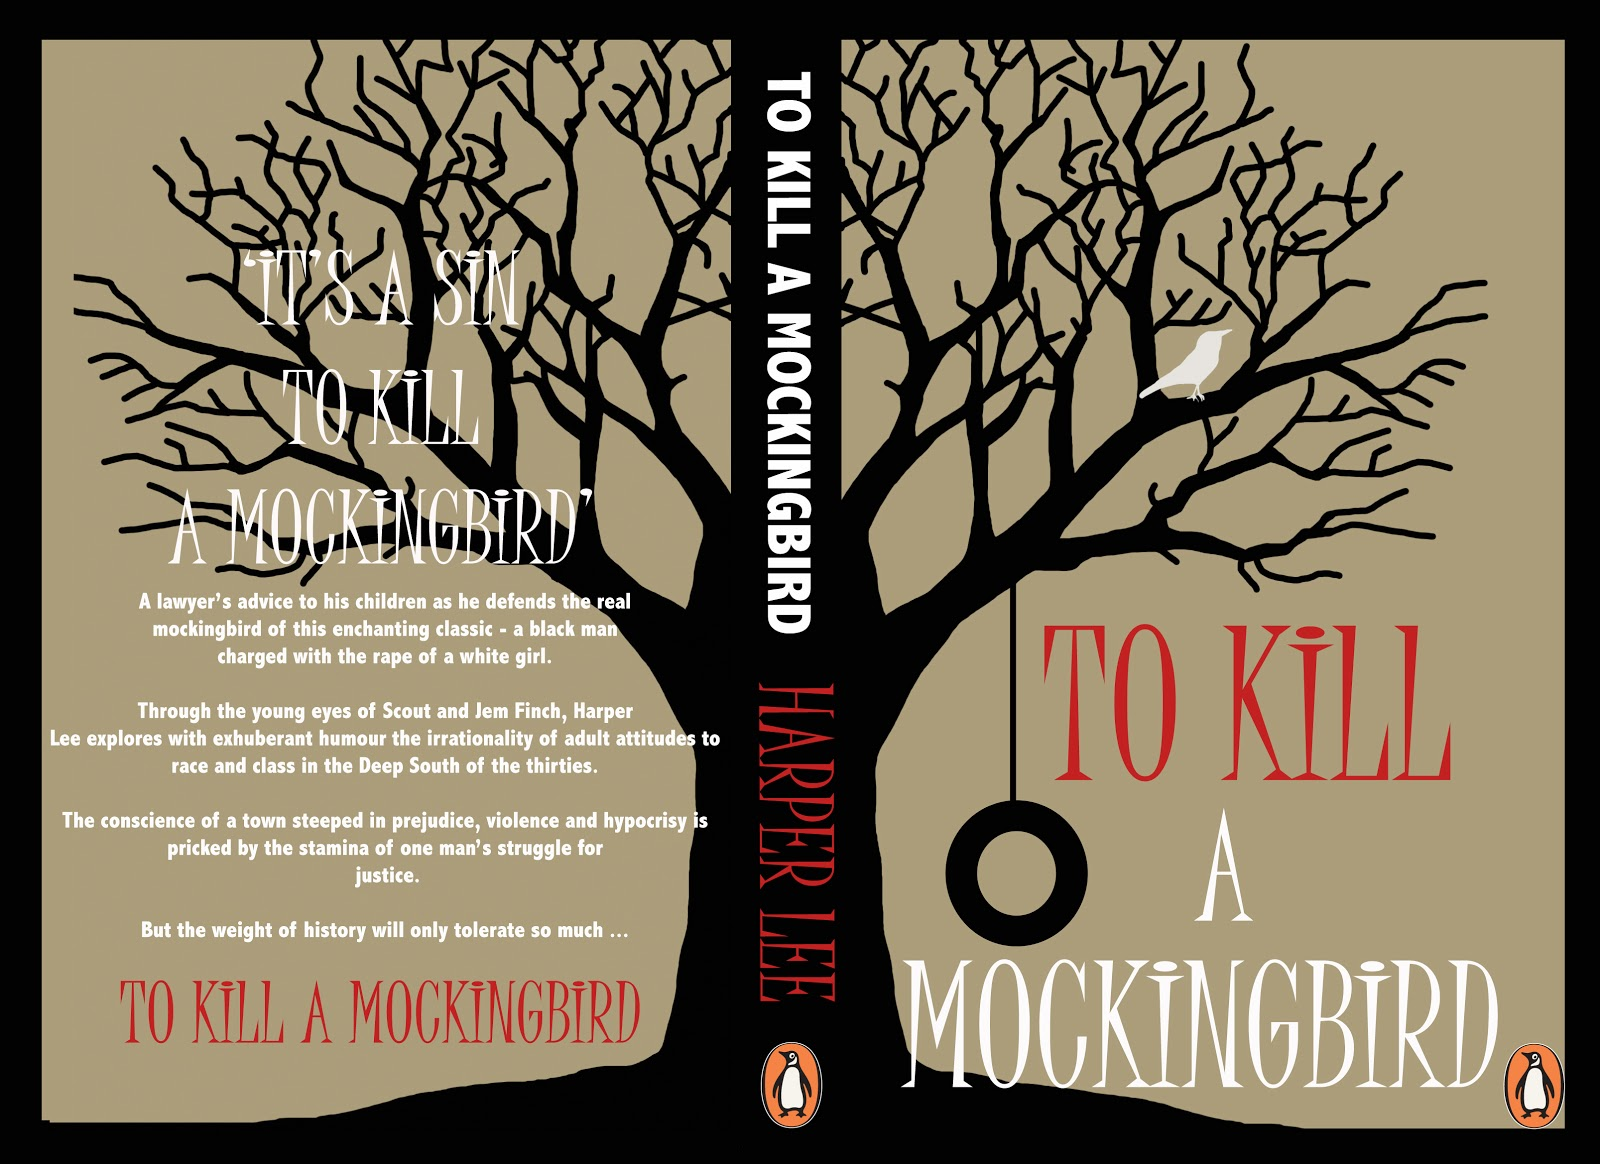 to kill a mockingbird essays on compassion In to kill a mockingbird by harper lee essay in to kill a mockingbird by harper lee, the small-mindedness of the maycomb community hiders maycomb people to truly understand each other arthur radley, also known as boo, is assigned with negative characteristics without validation by the maycomb community.